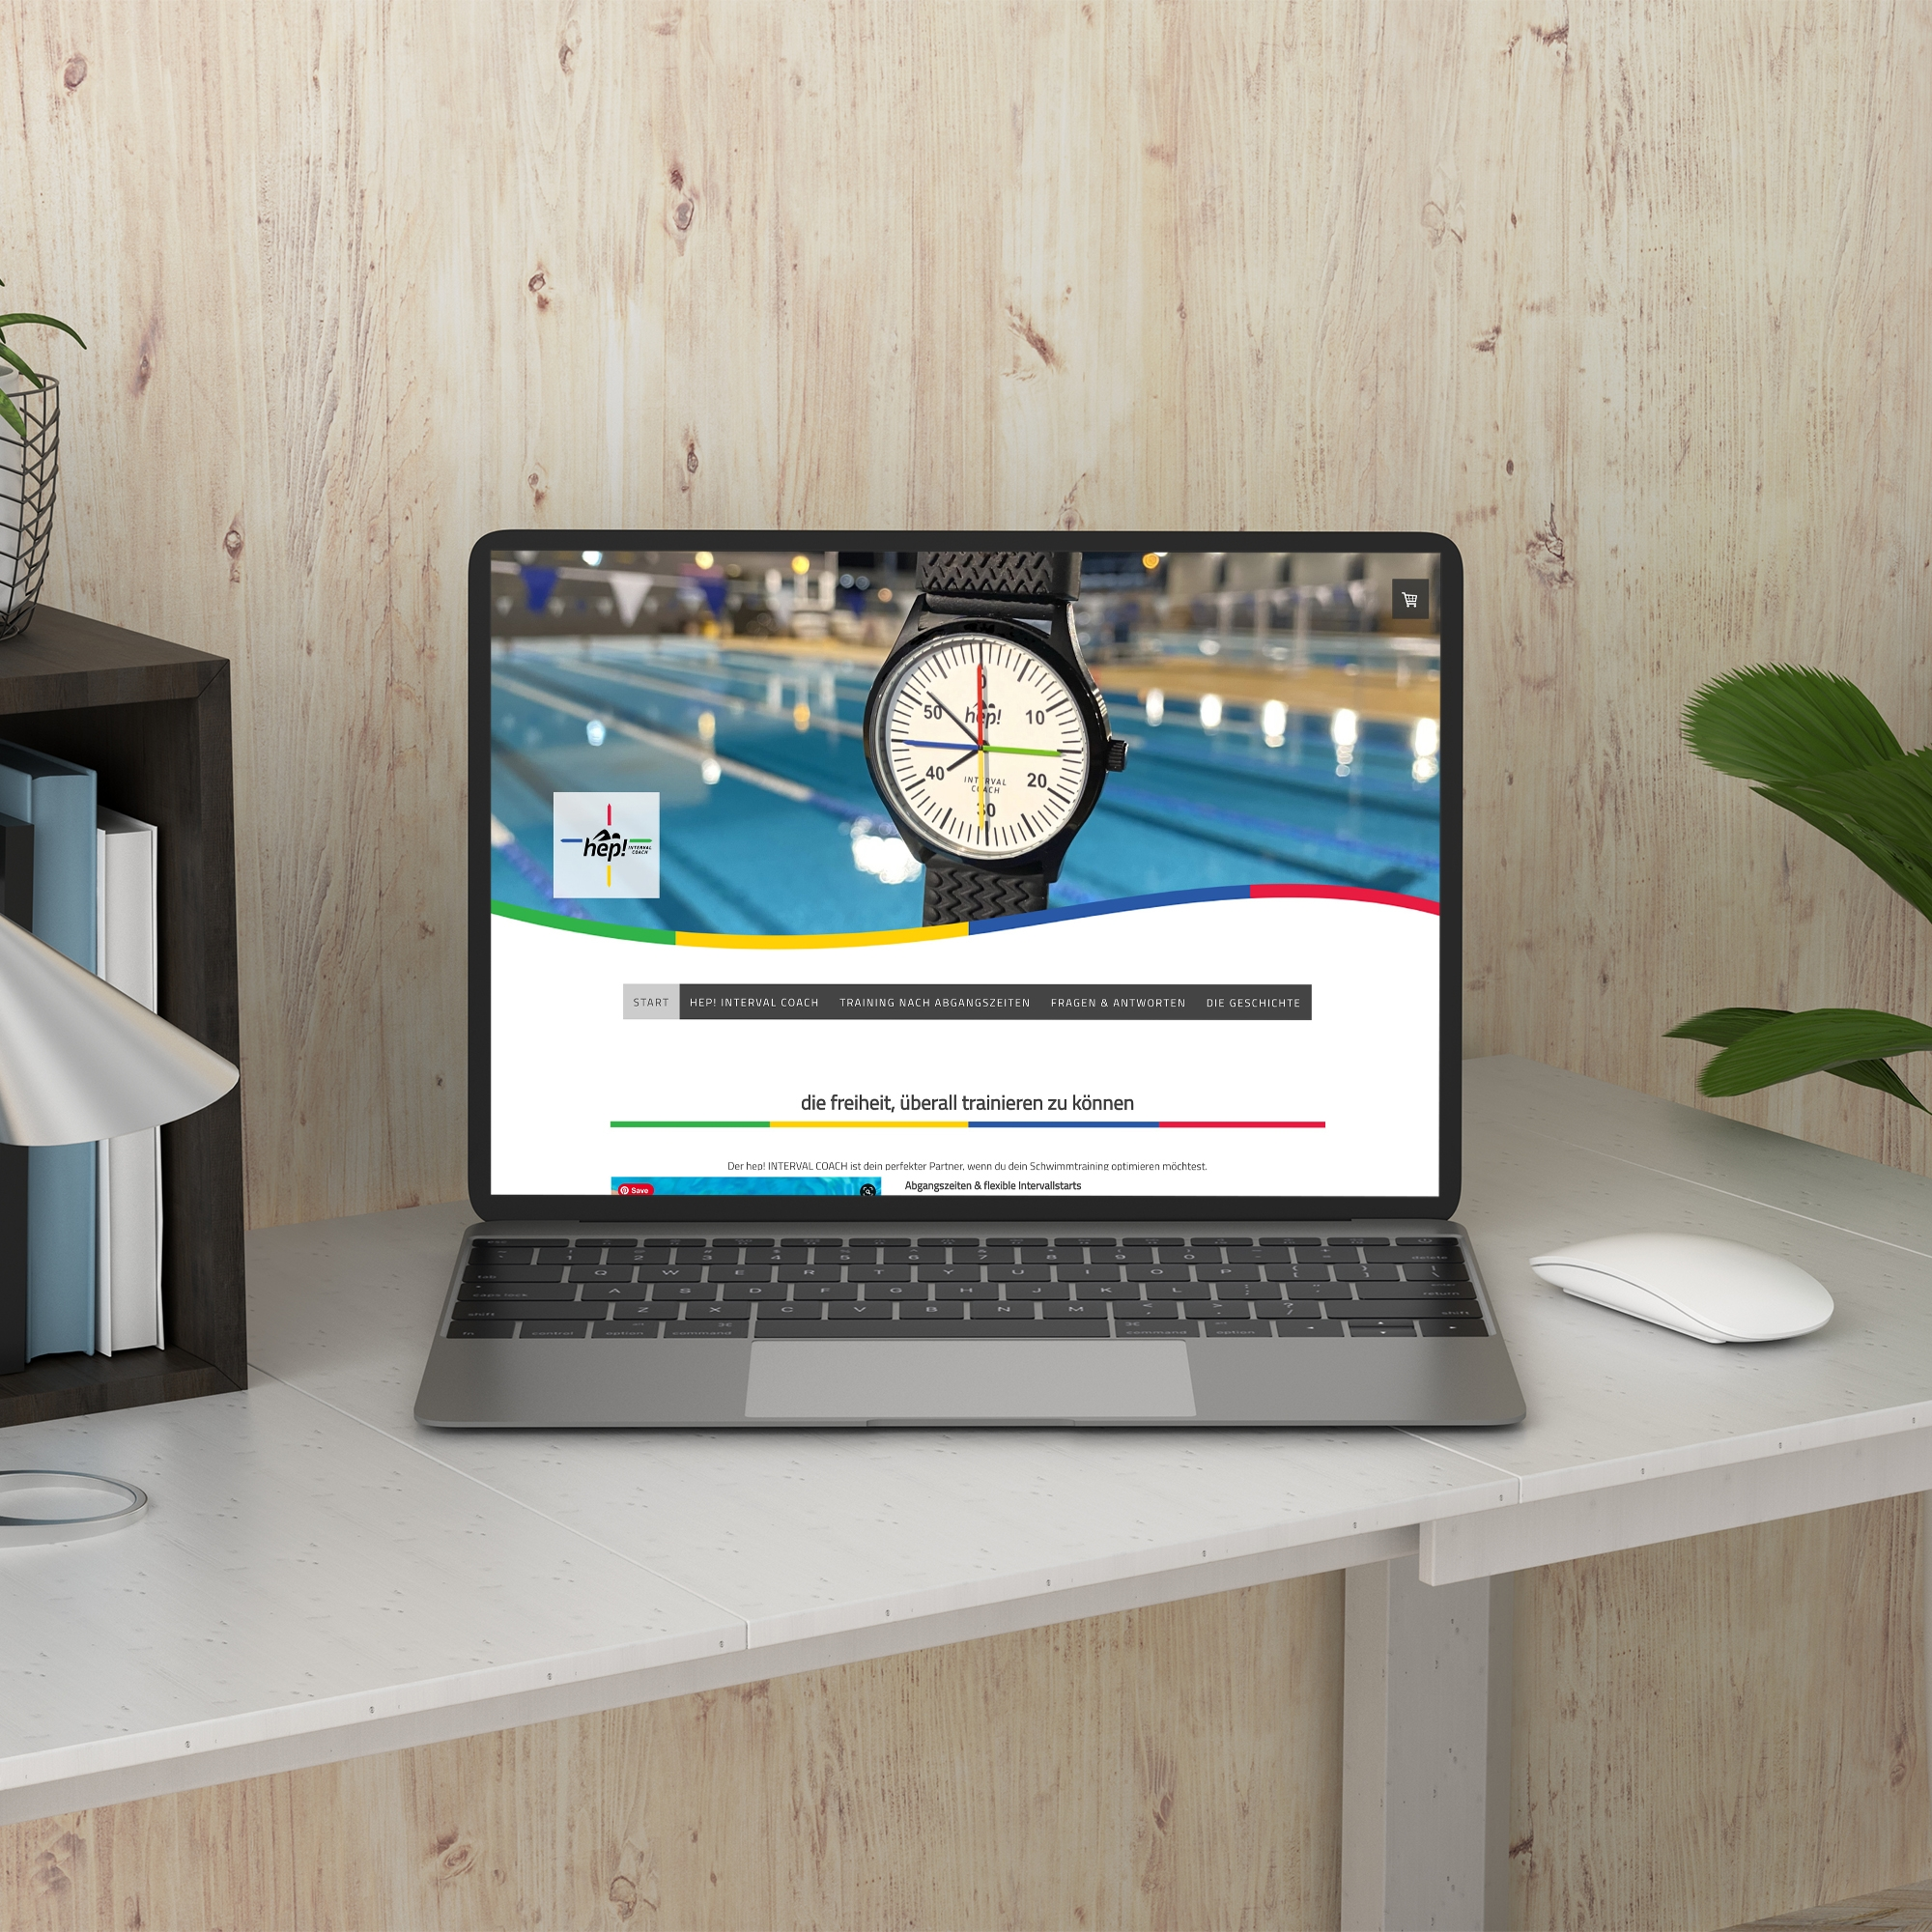 Web design done for a swimming watch brand